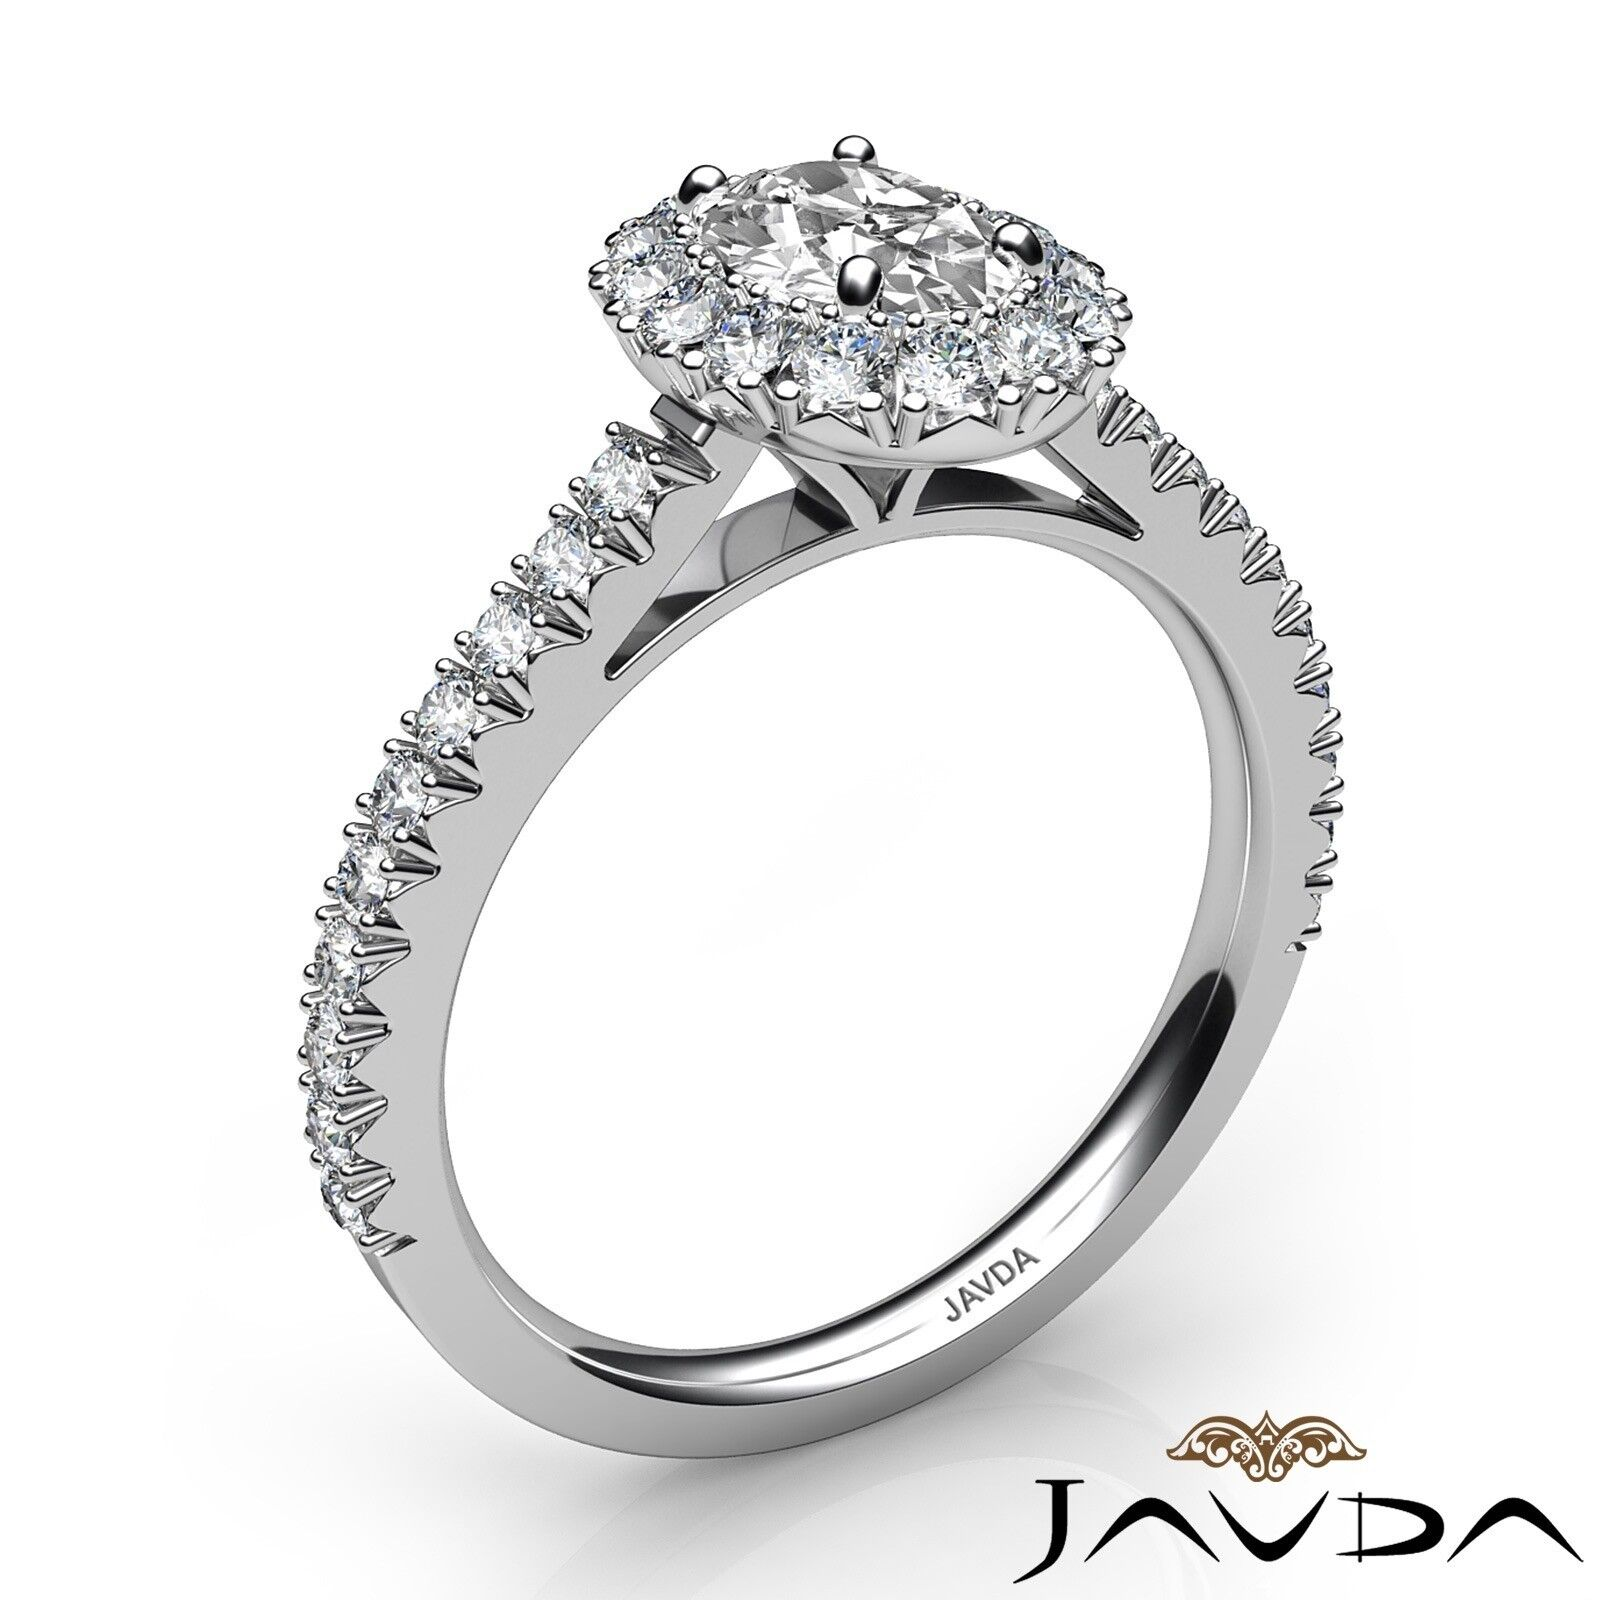 1.5ctw French V Cut Halo Pave Oval Diamond Engagement Ring GIA F-VVS2 White Gold 1